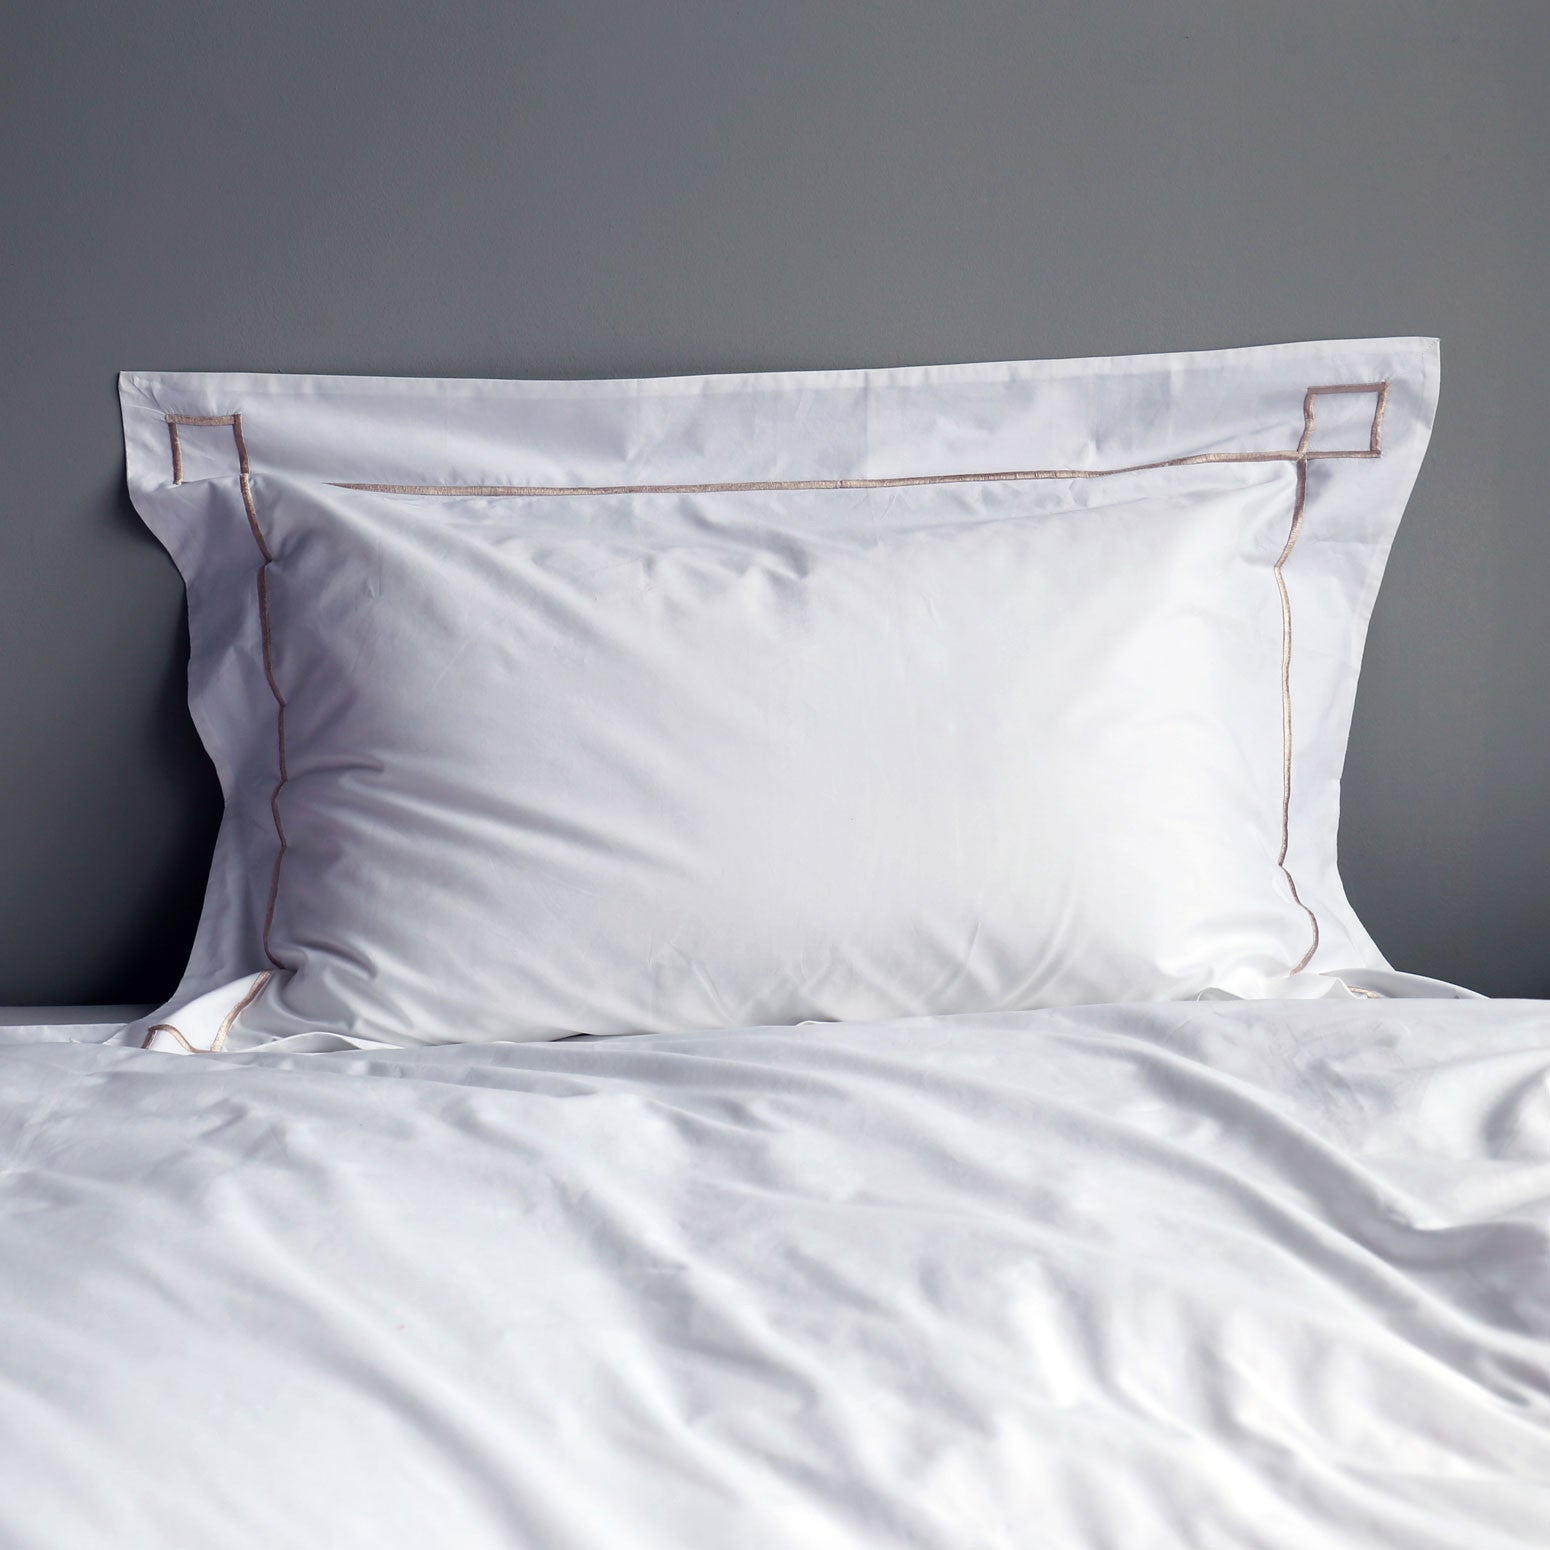 Jaipur embroidered Oxford single pillowcase